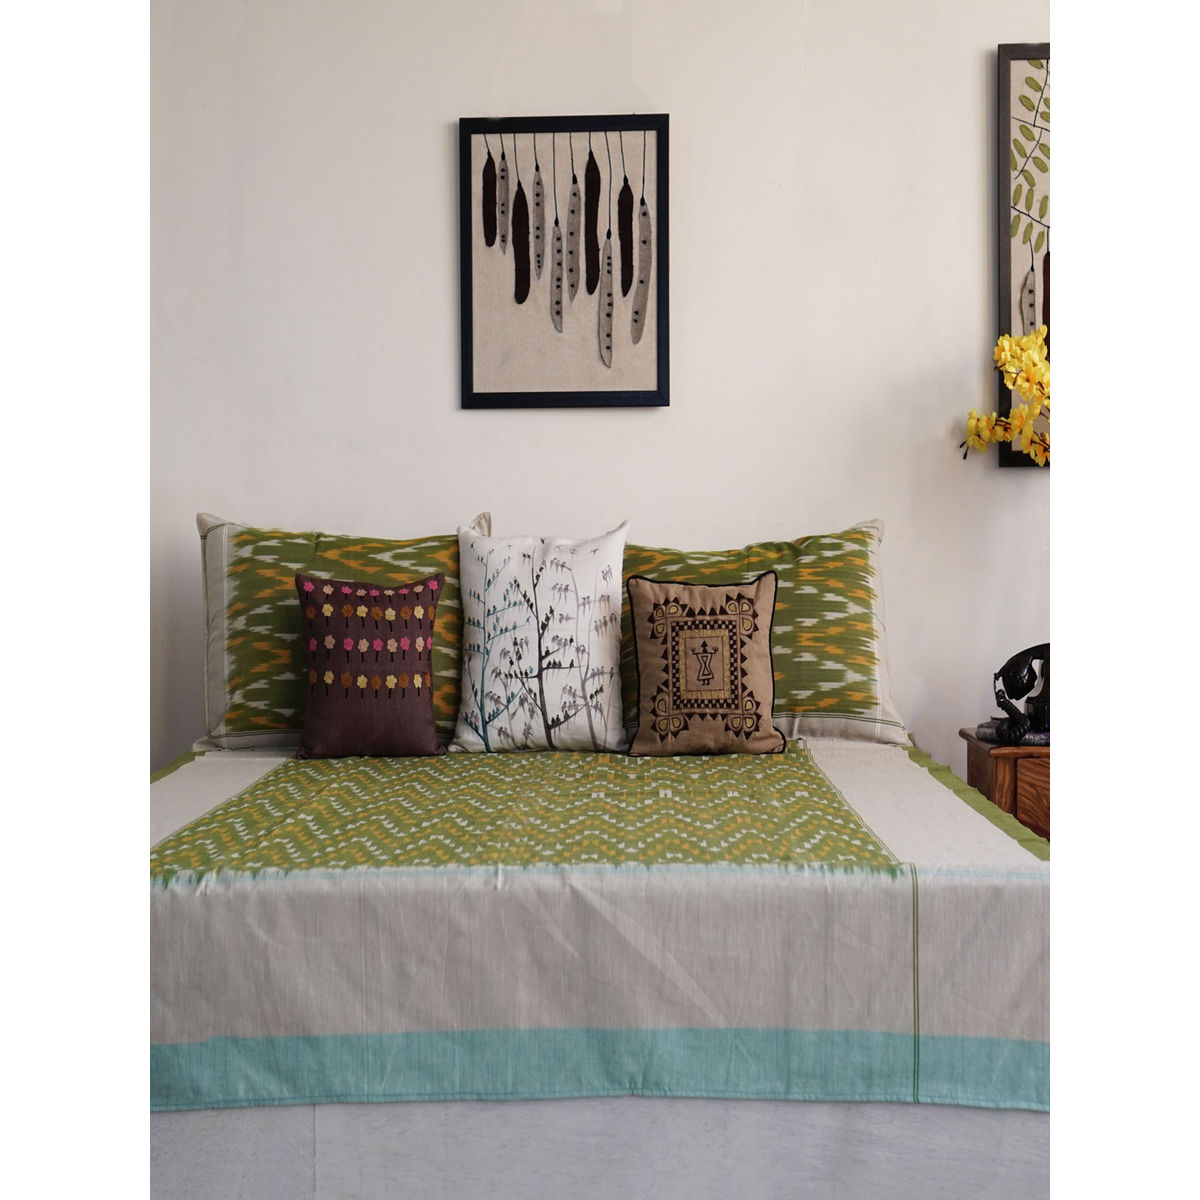 Nibir Single Bedsheet with Pillow Cover